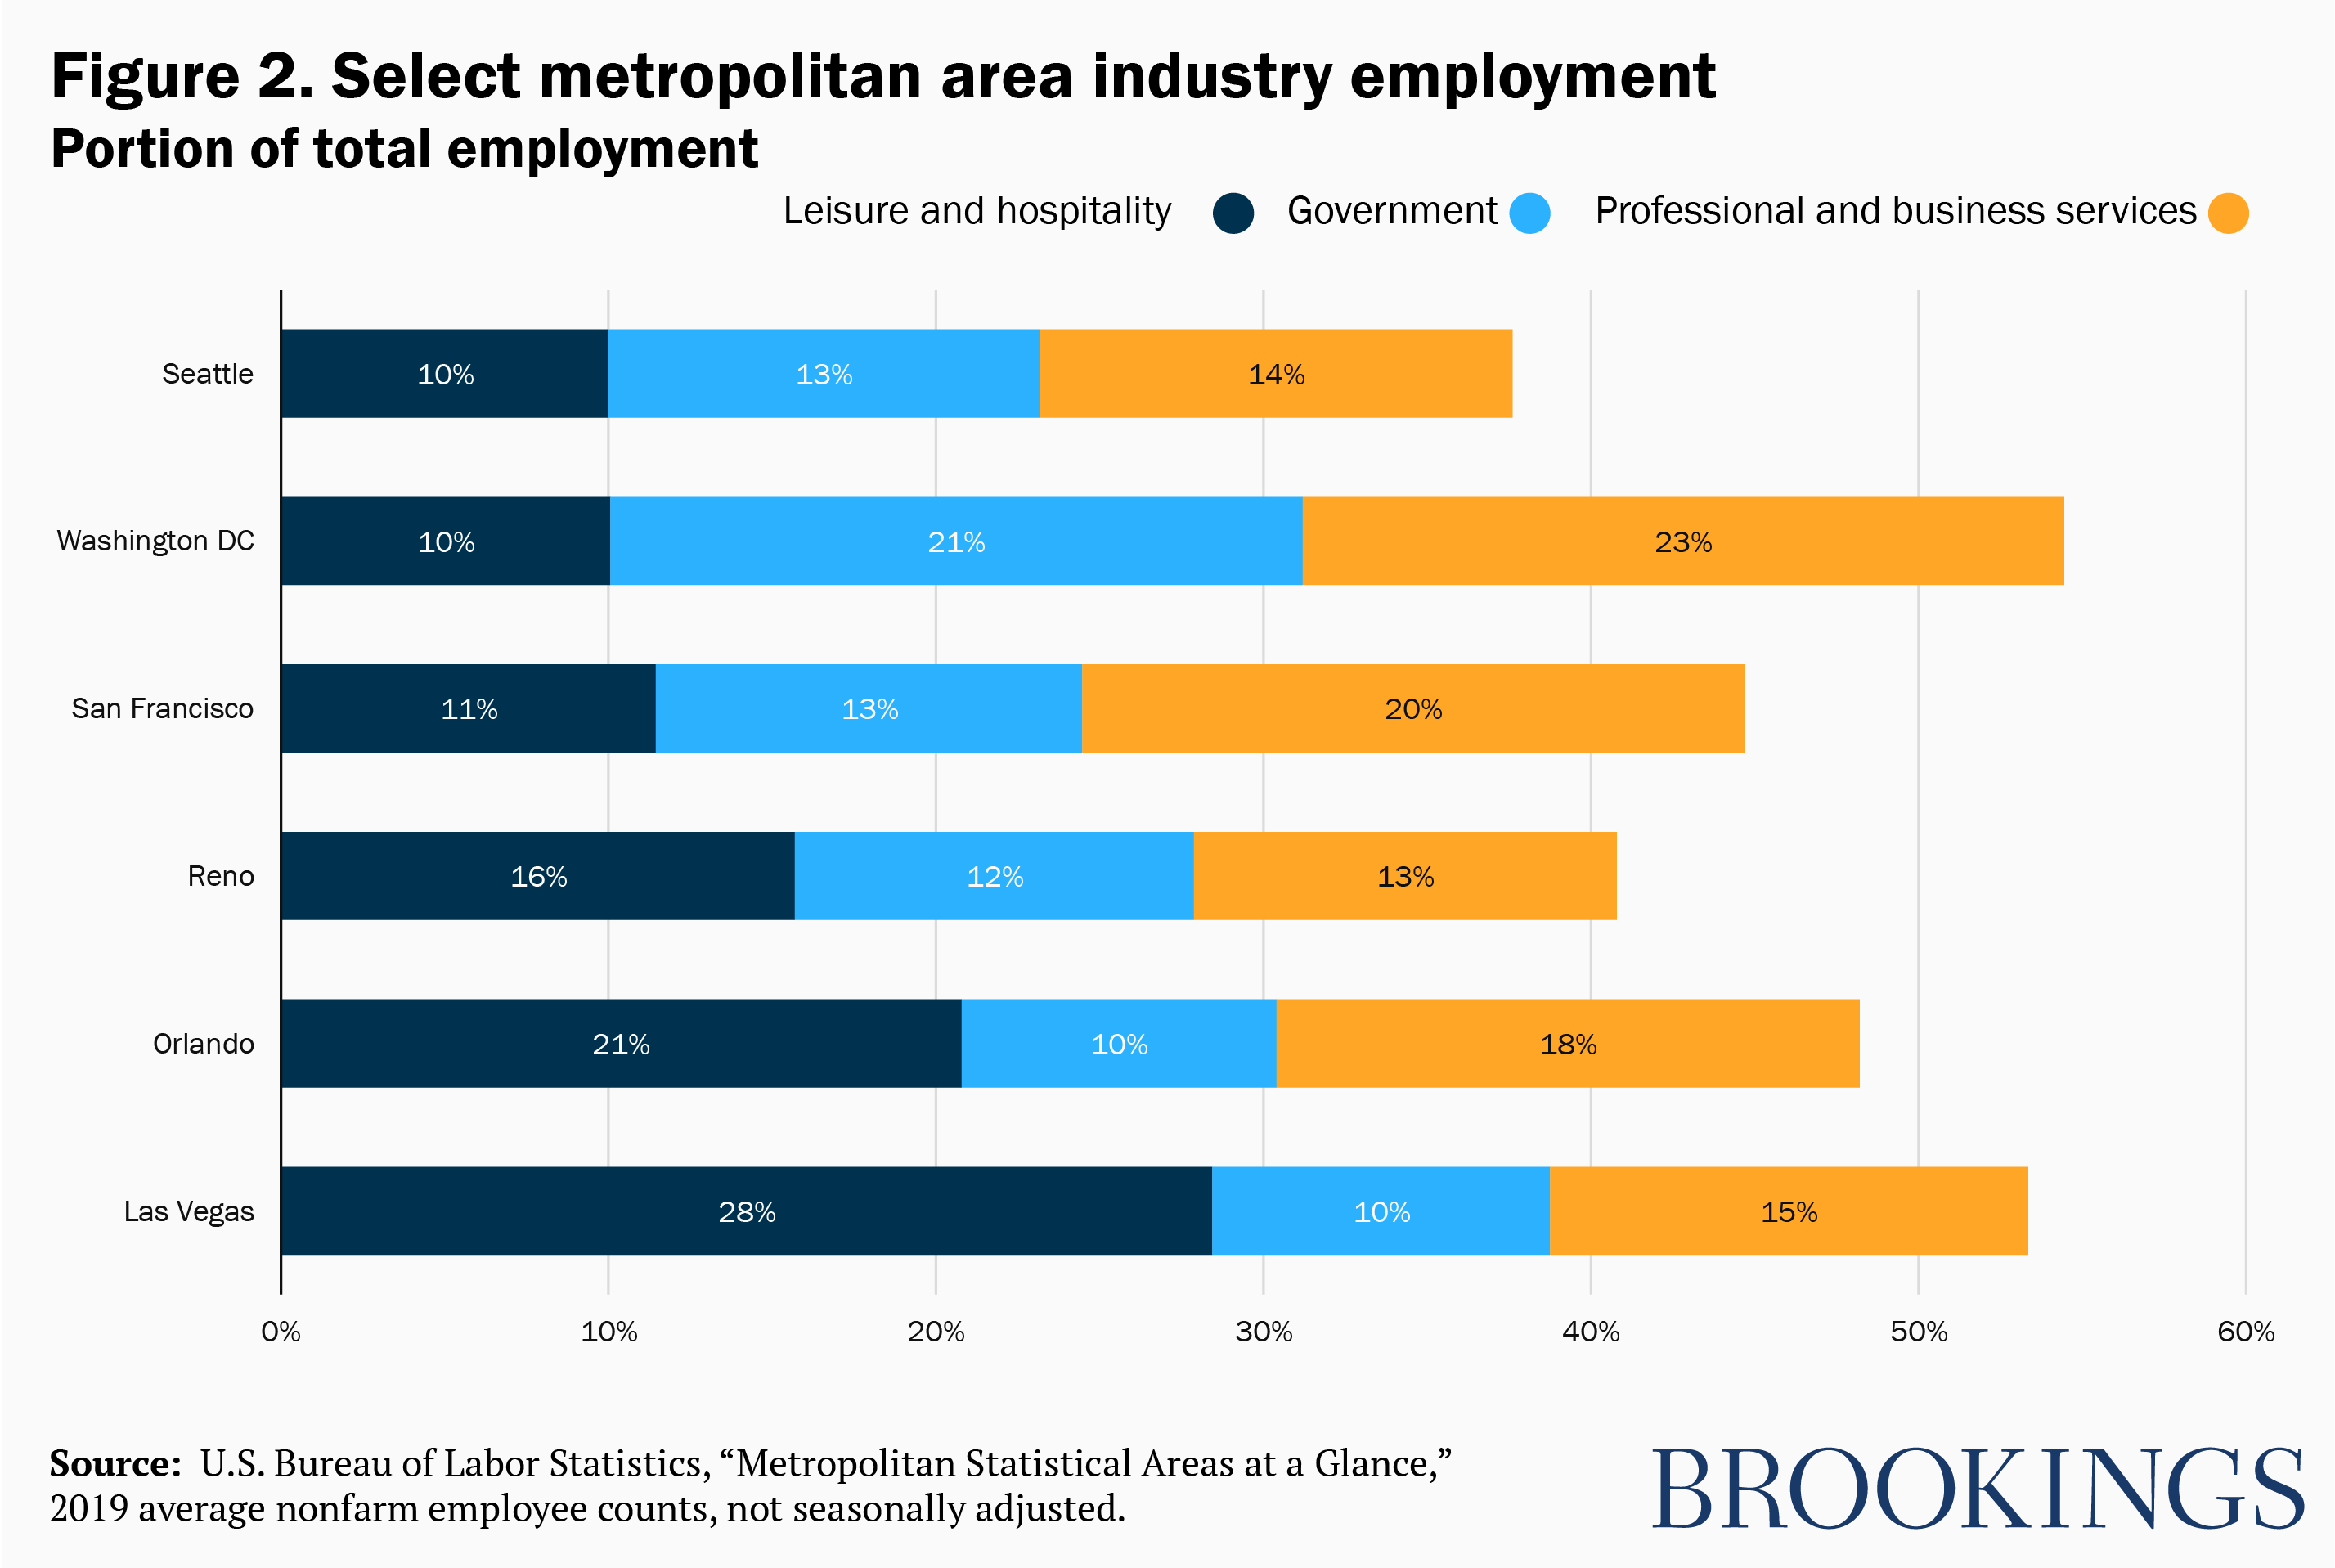 Select metropolitan area industry employment - portion of total employment